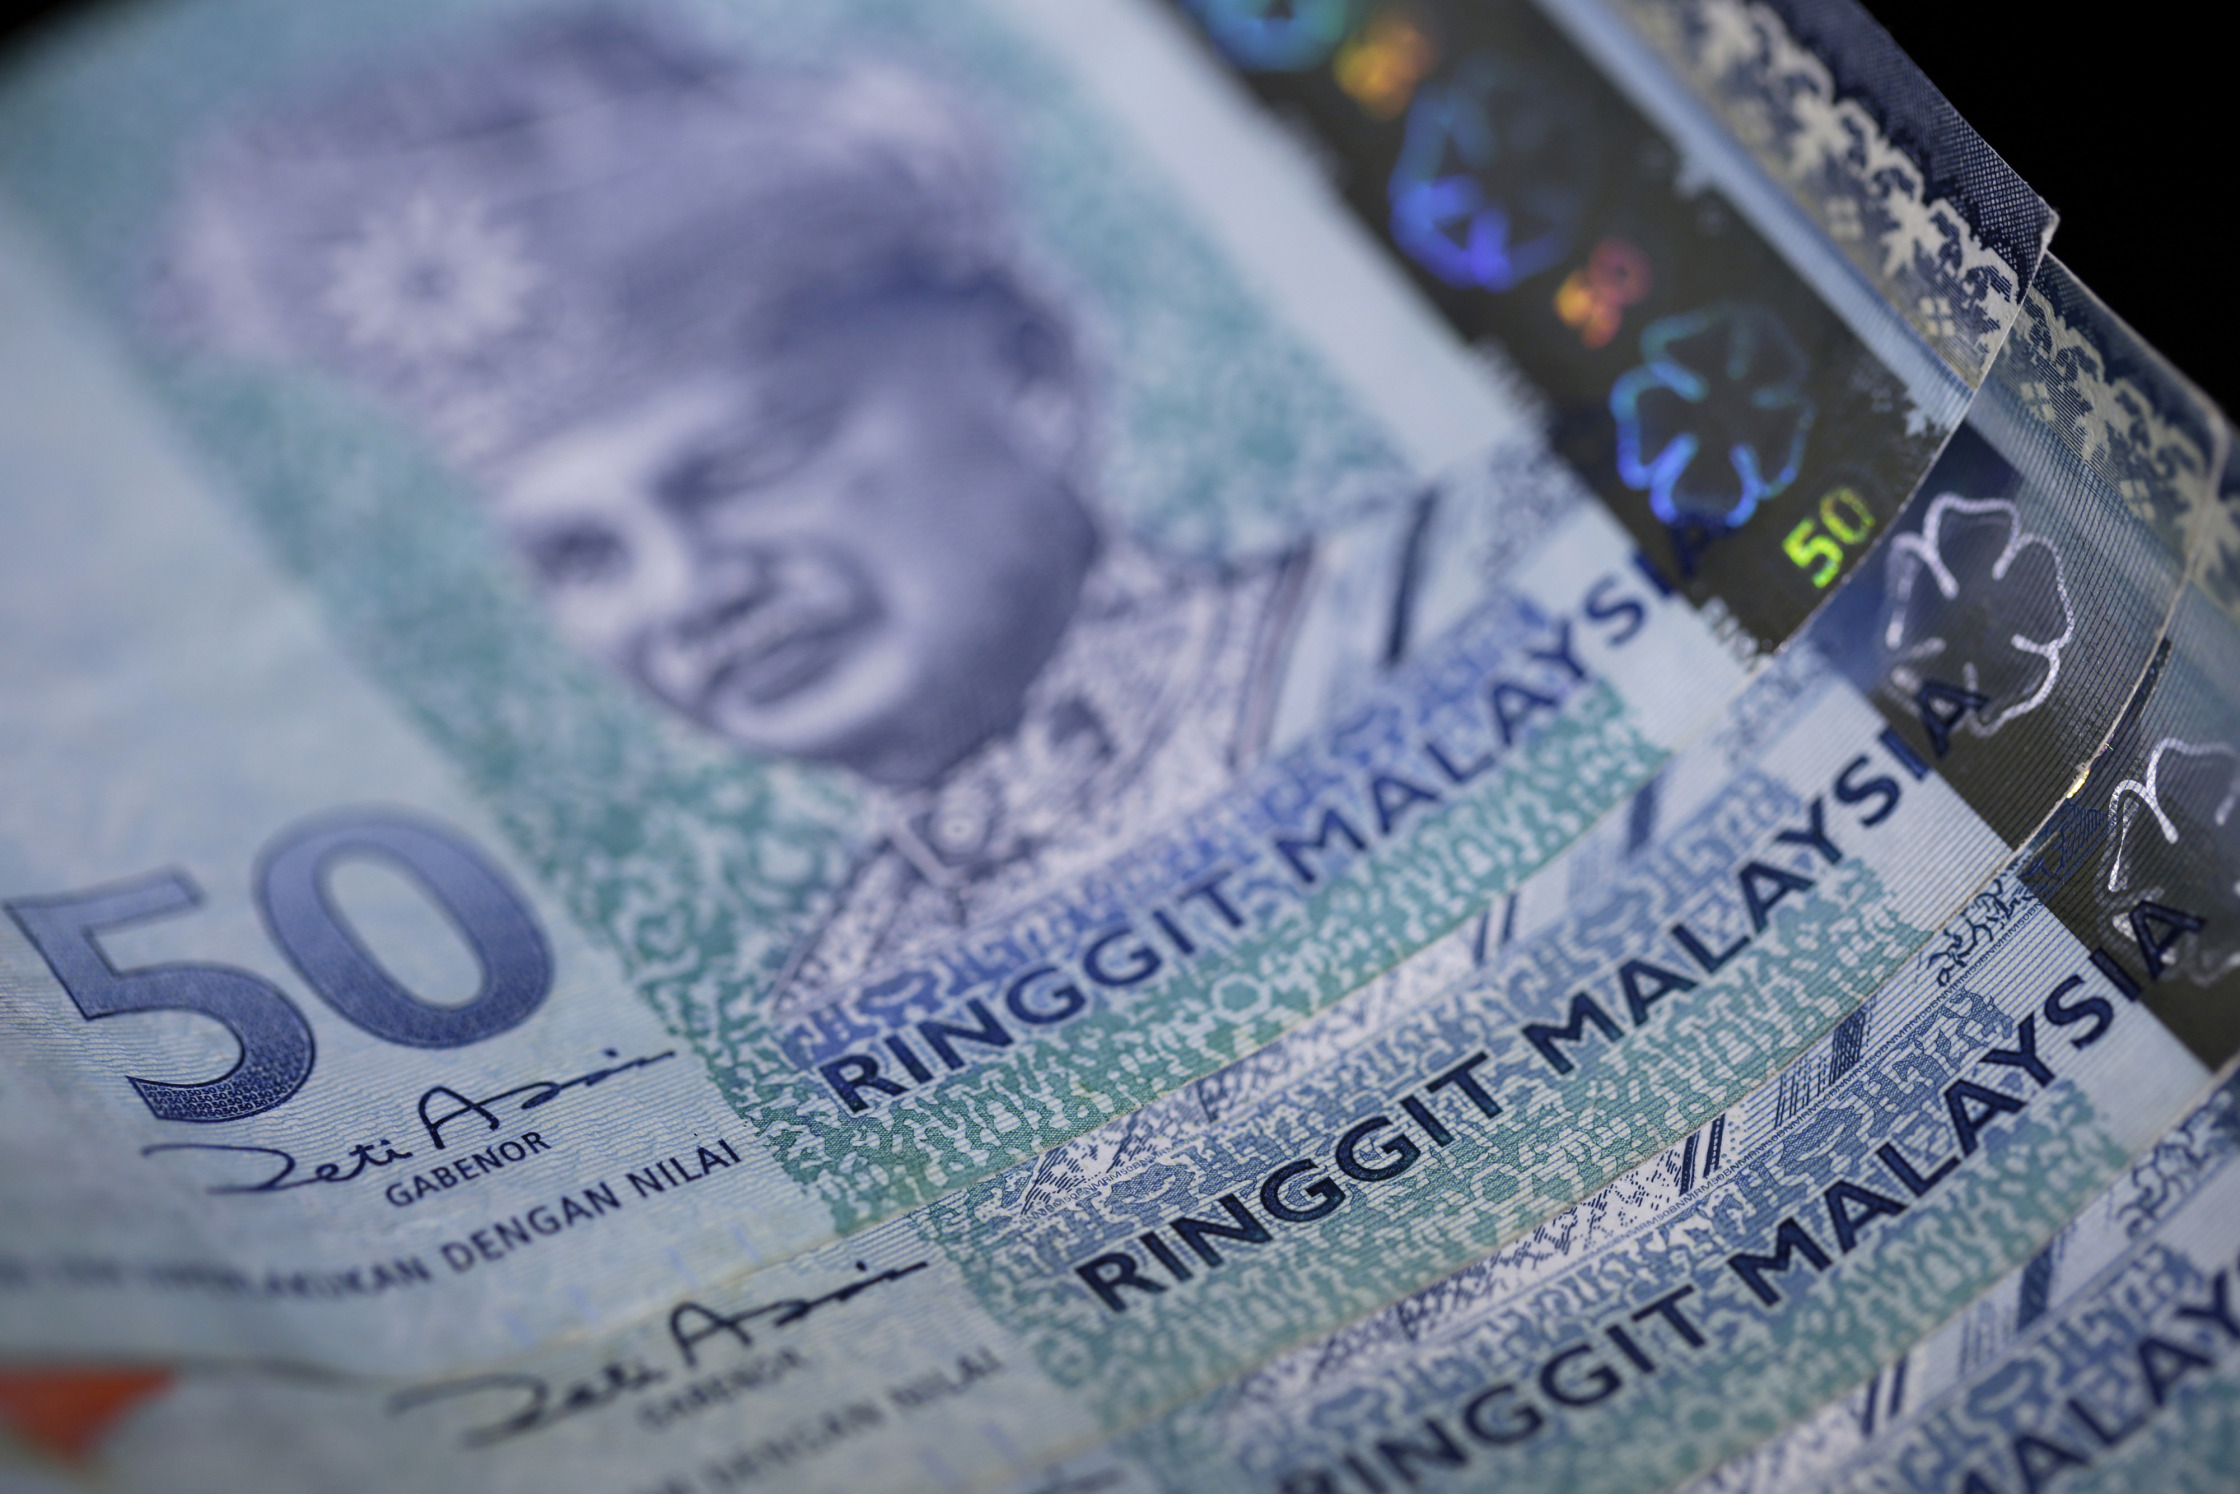 The Ringgit Is At Risk From Falling Oil And Slowing Growth Bloomberg